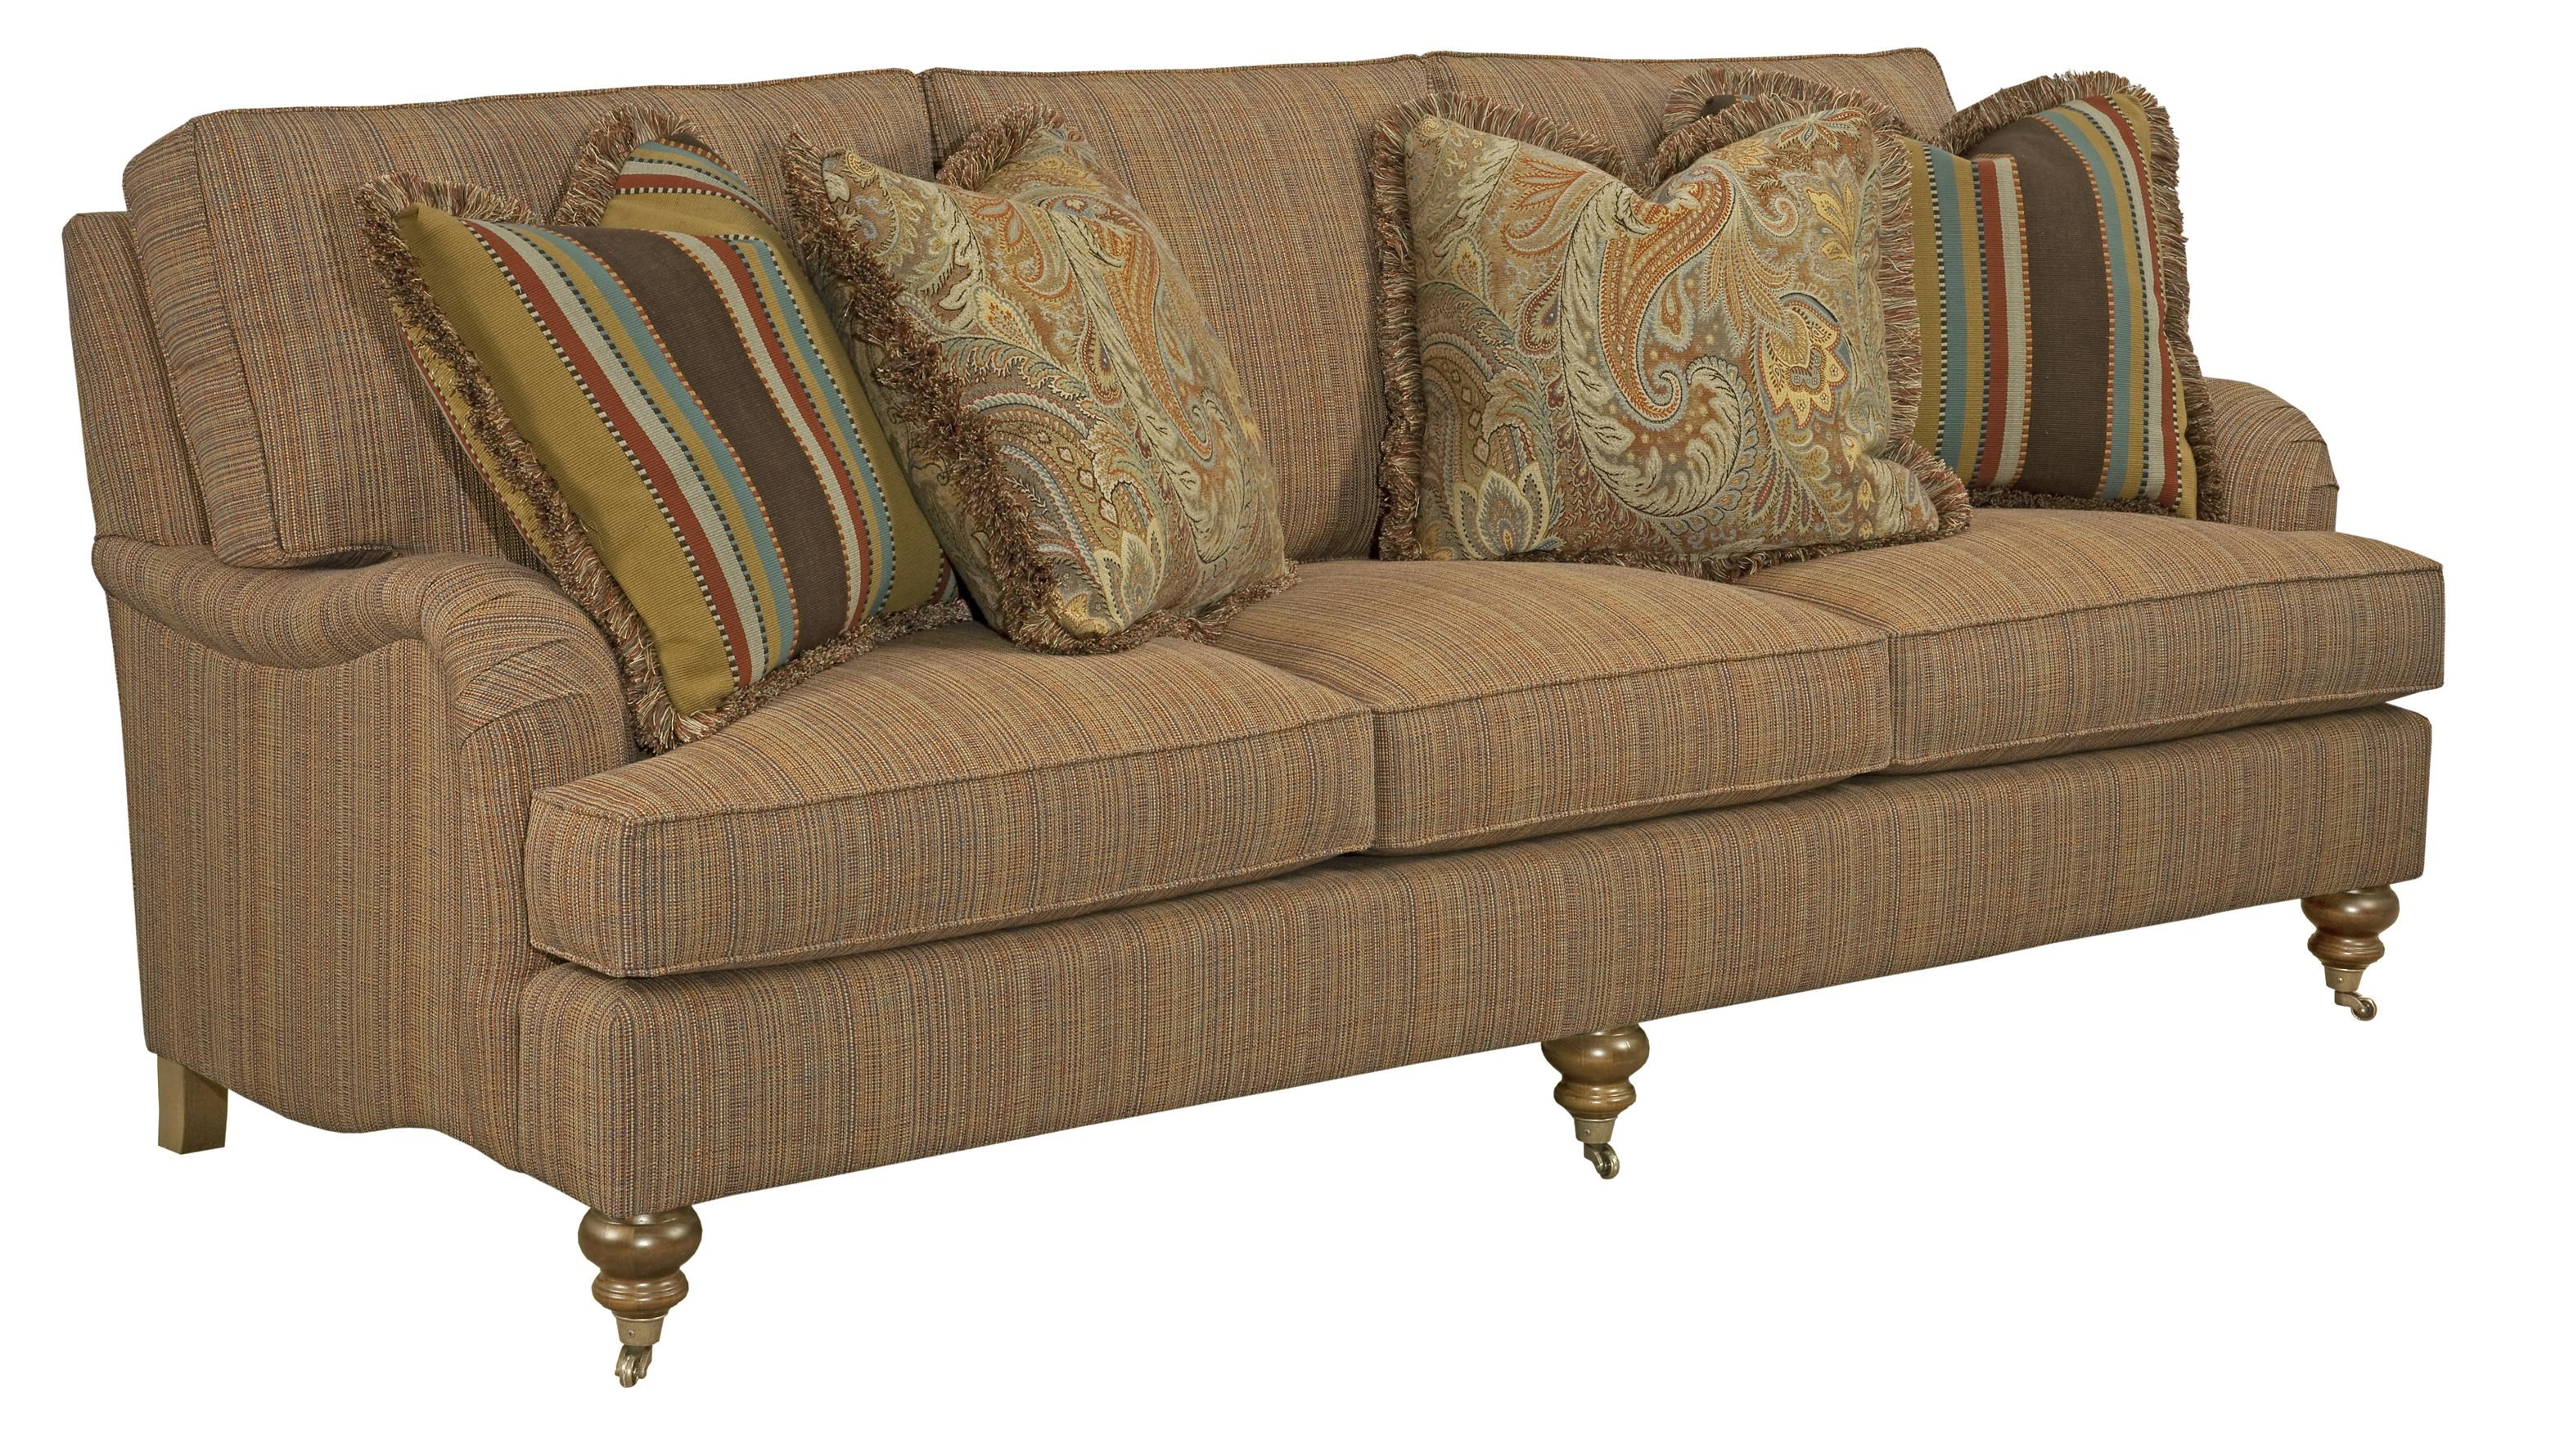 Beau Kincaid Furniture Greenwich3 Over 3 Sofa ...